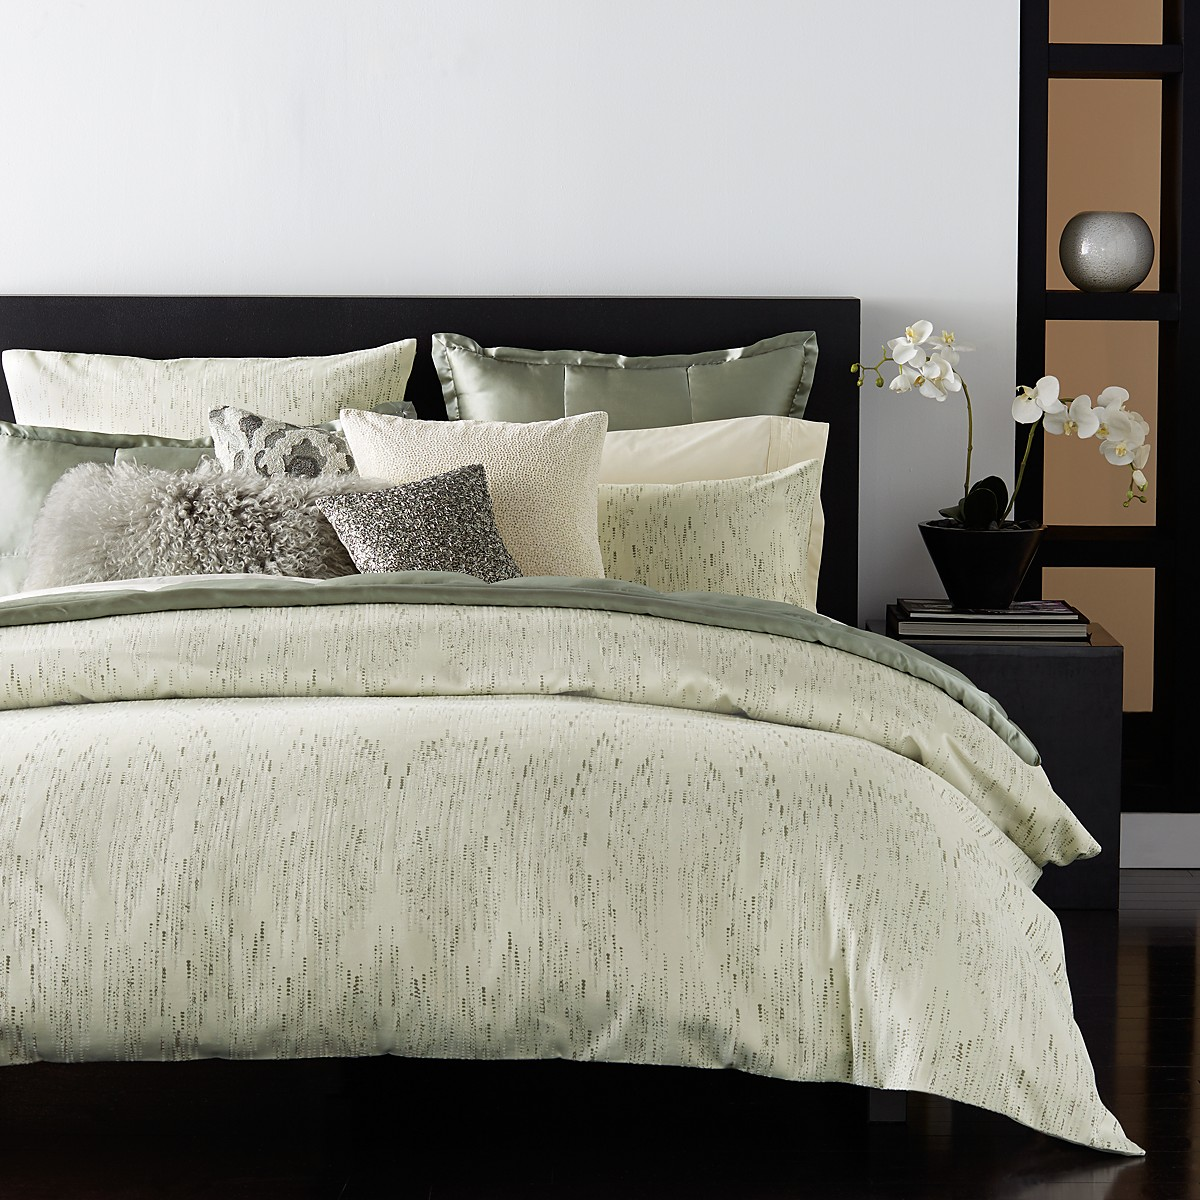 linen eileen bedding washed cheap linens bed pratesi with awesome on fisher nordstrom sofa